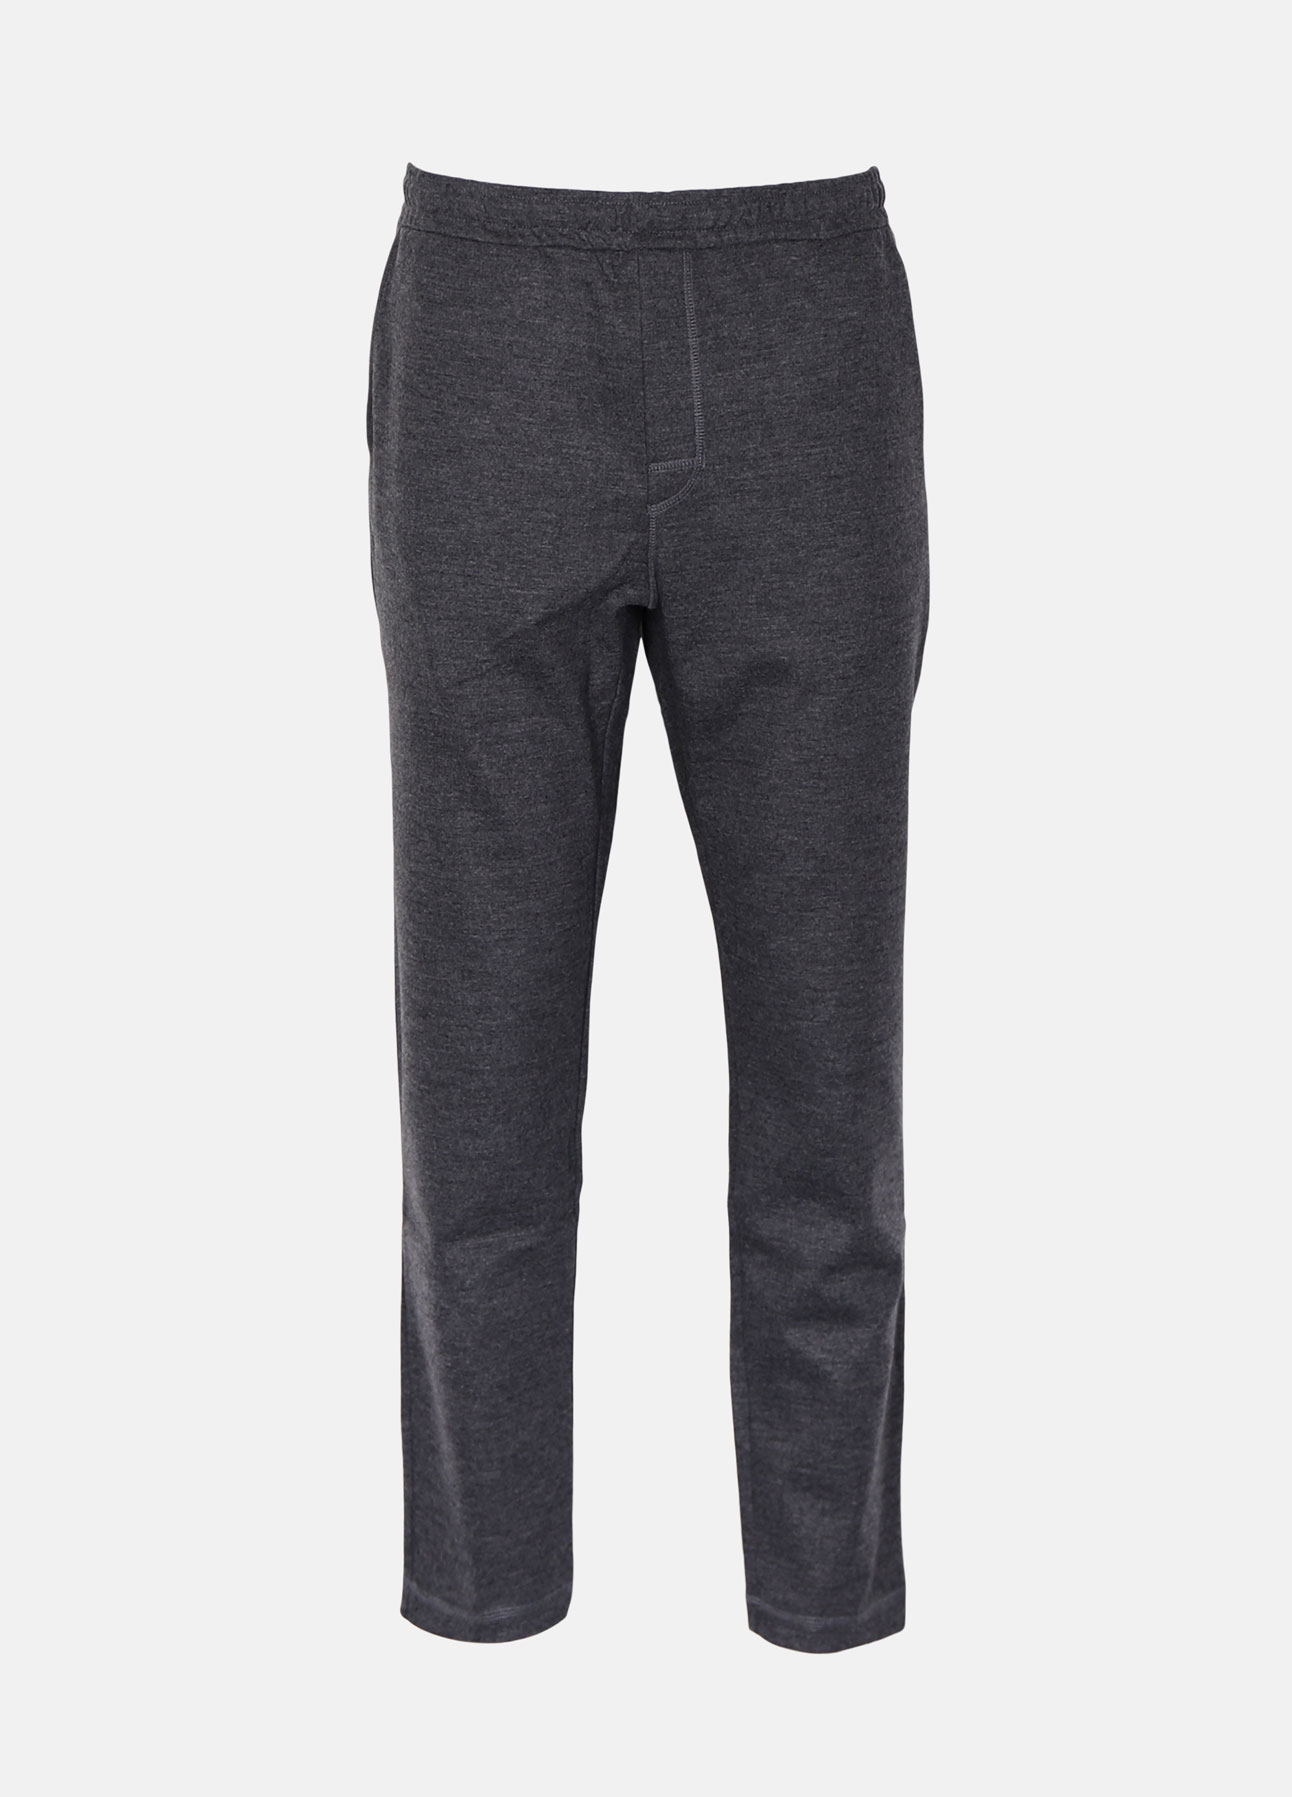 Norse Projects bukser falun wool charcoal mel aw19